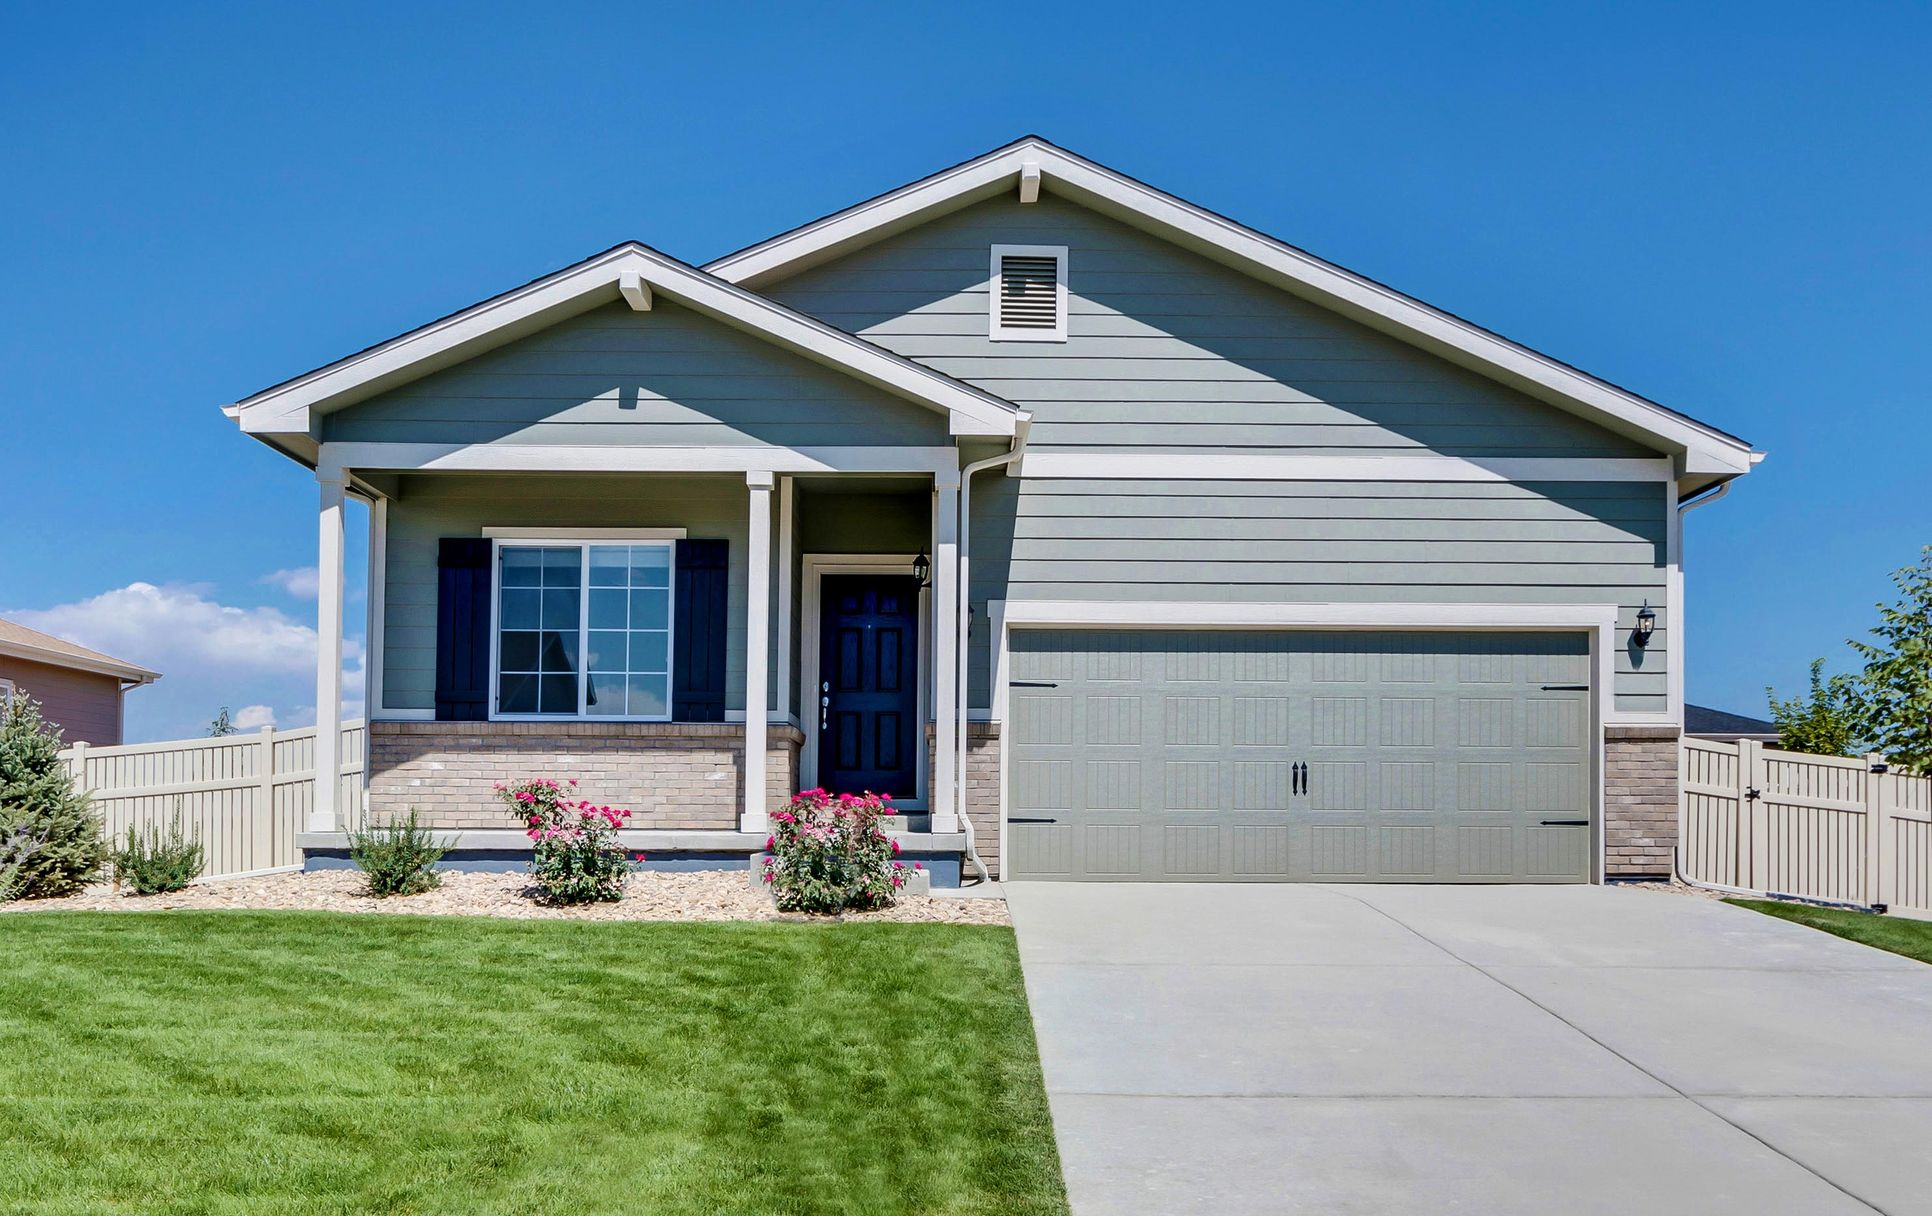 LGI Homes at Bennett Crossing:Single-story are available, as well!